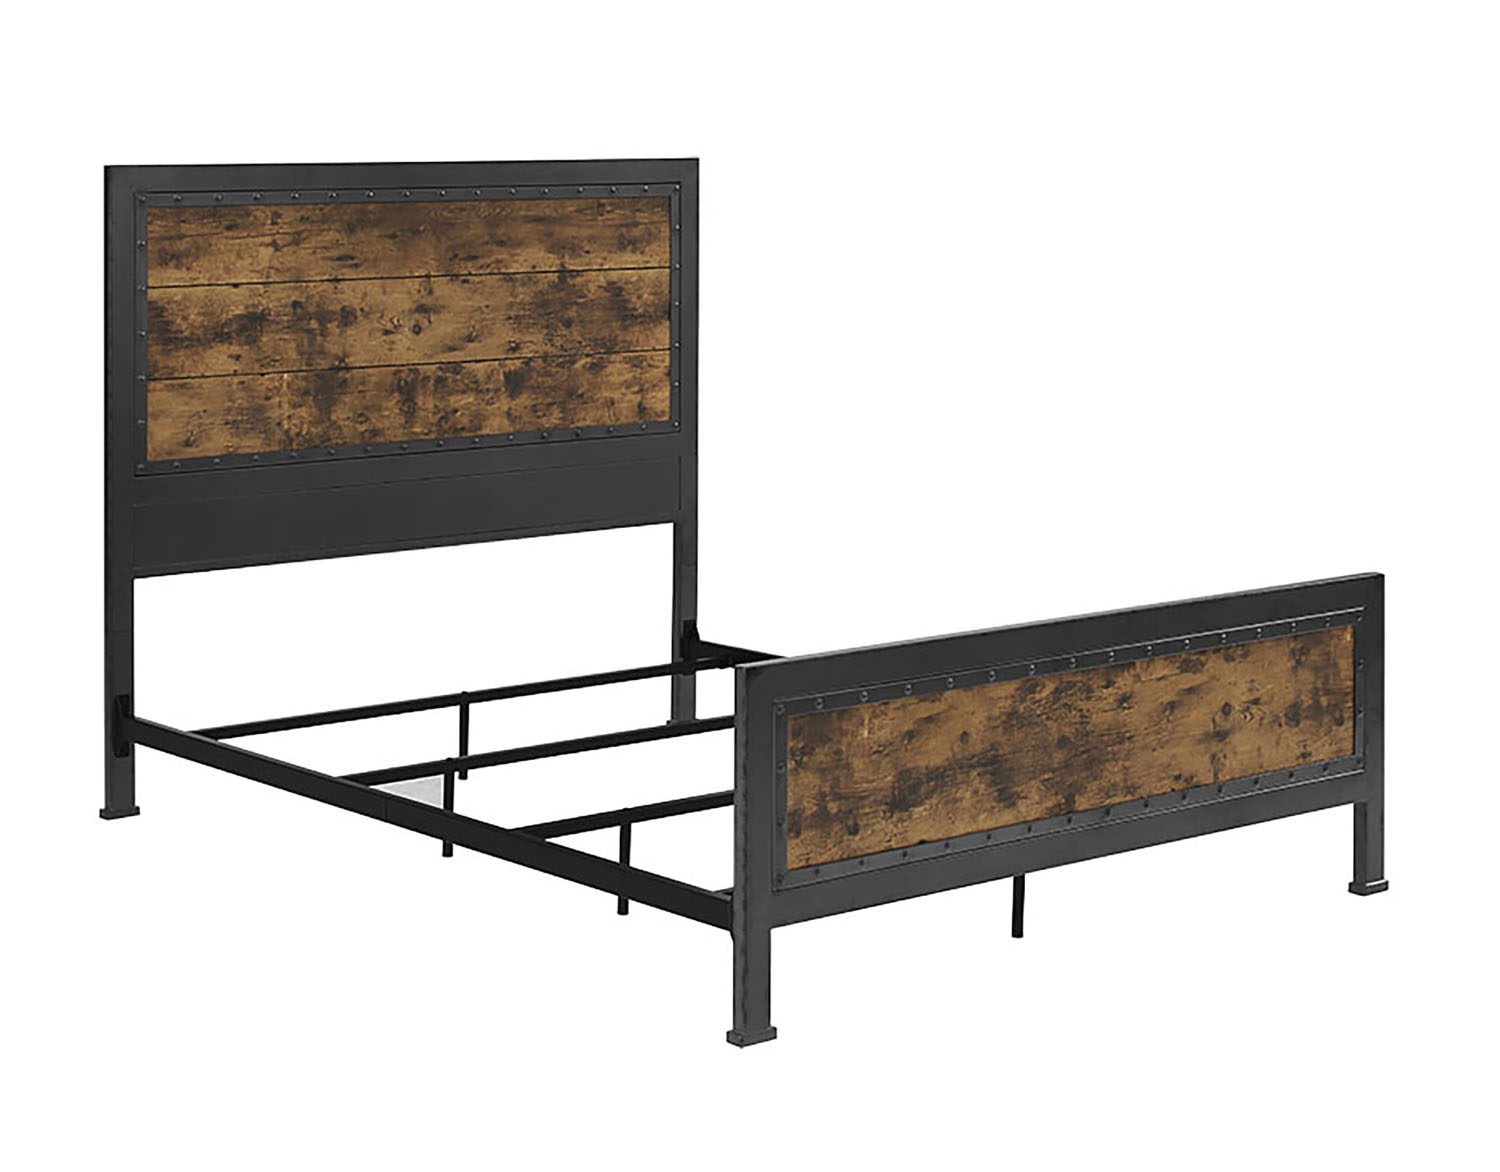 WE Furniture Queen Size Industrial Wood and Metal Bed - Brown